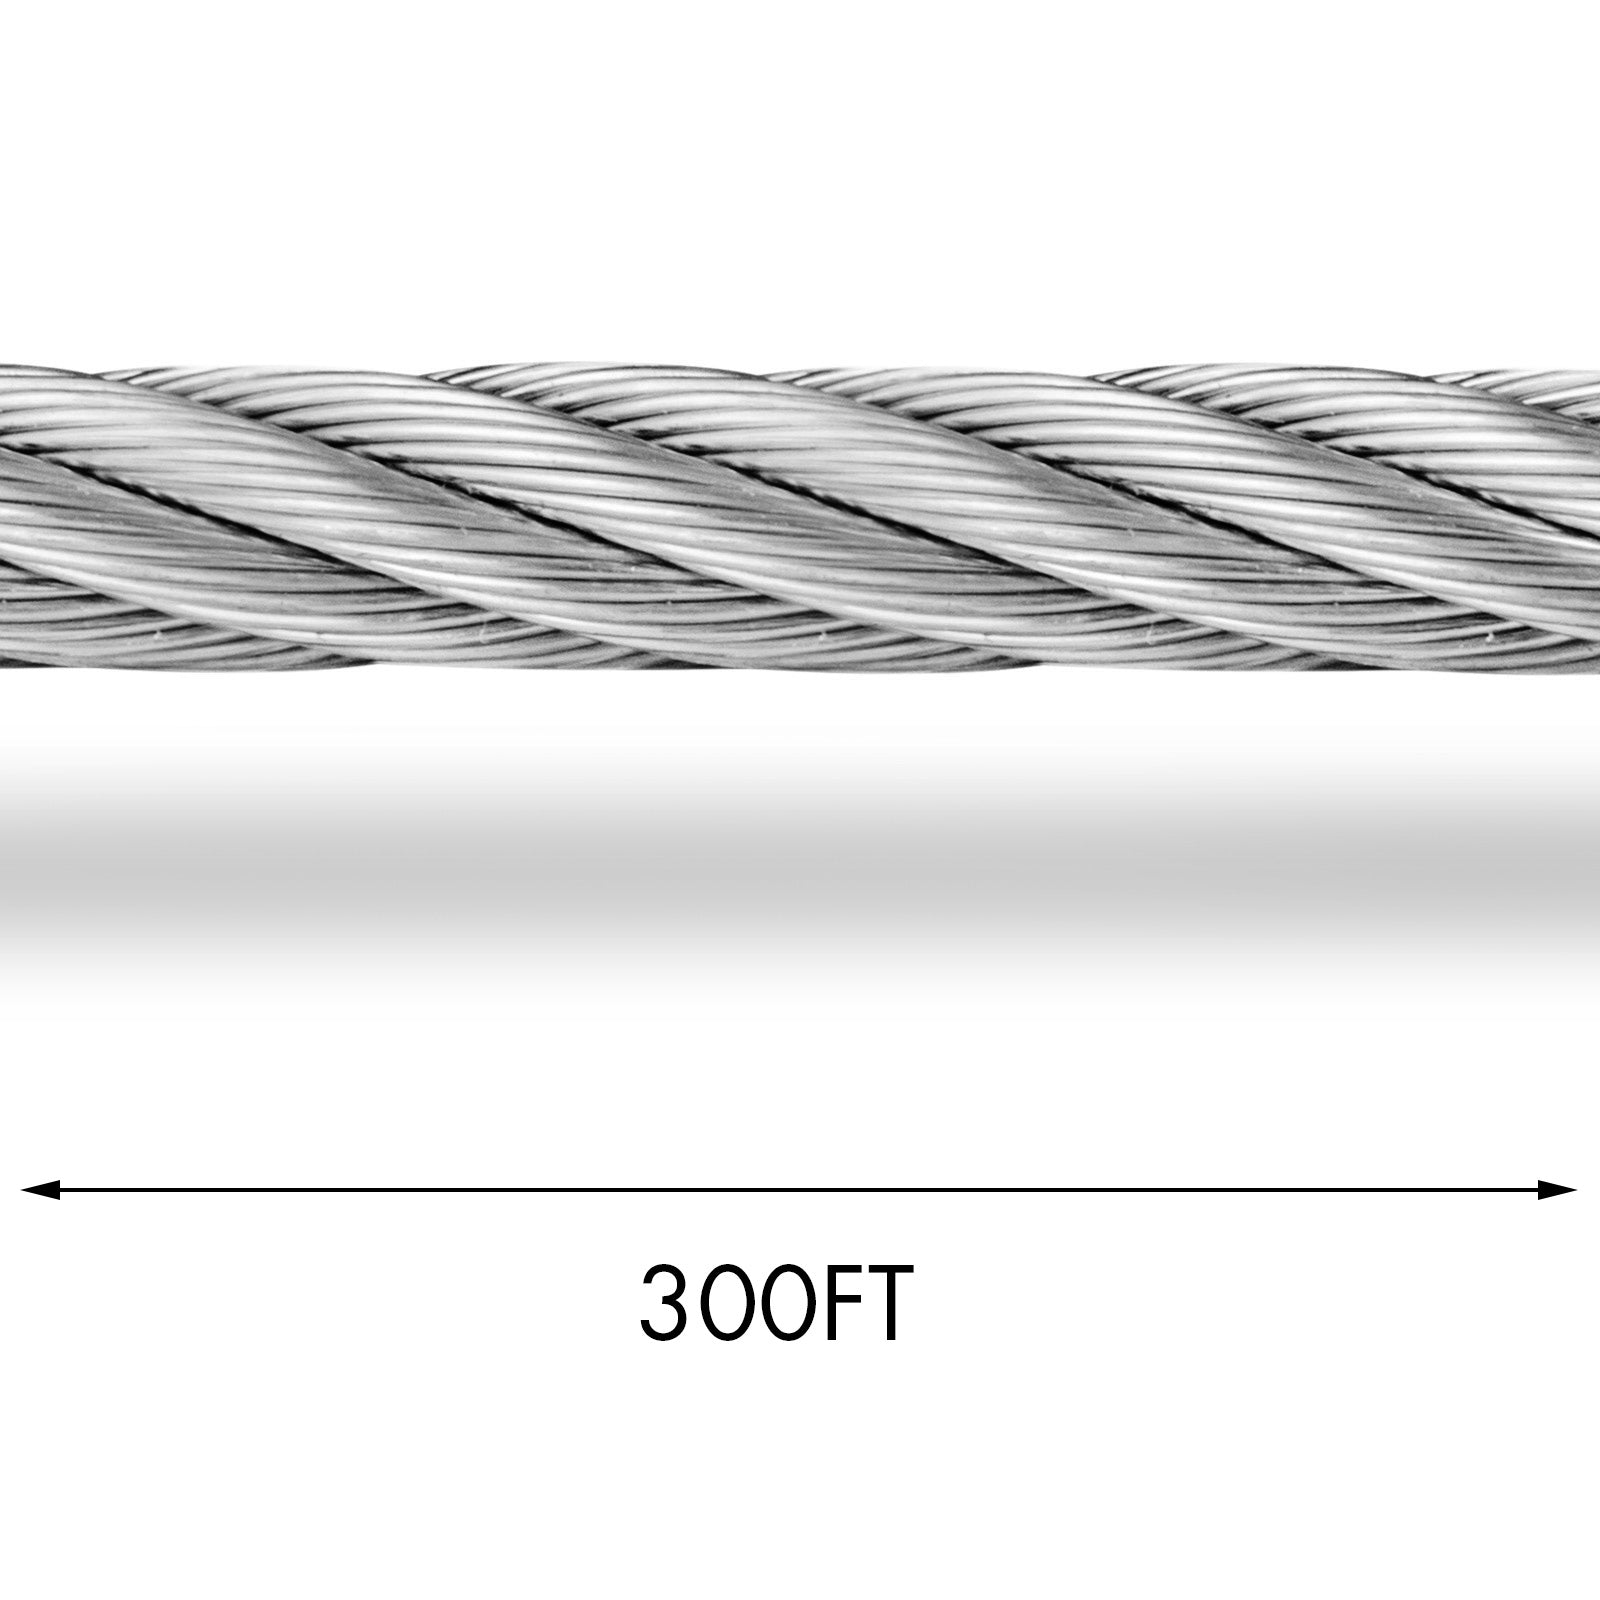 "T304 Stainless Steel Cable Wire Rope,1/4"",7x19,300ft Fishery Liftin"